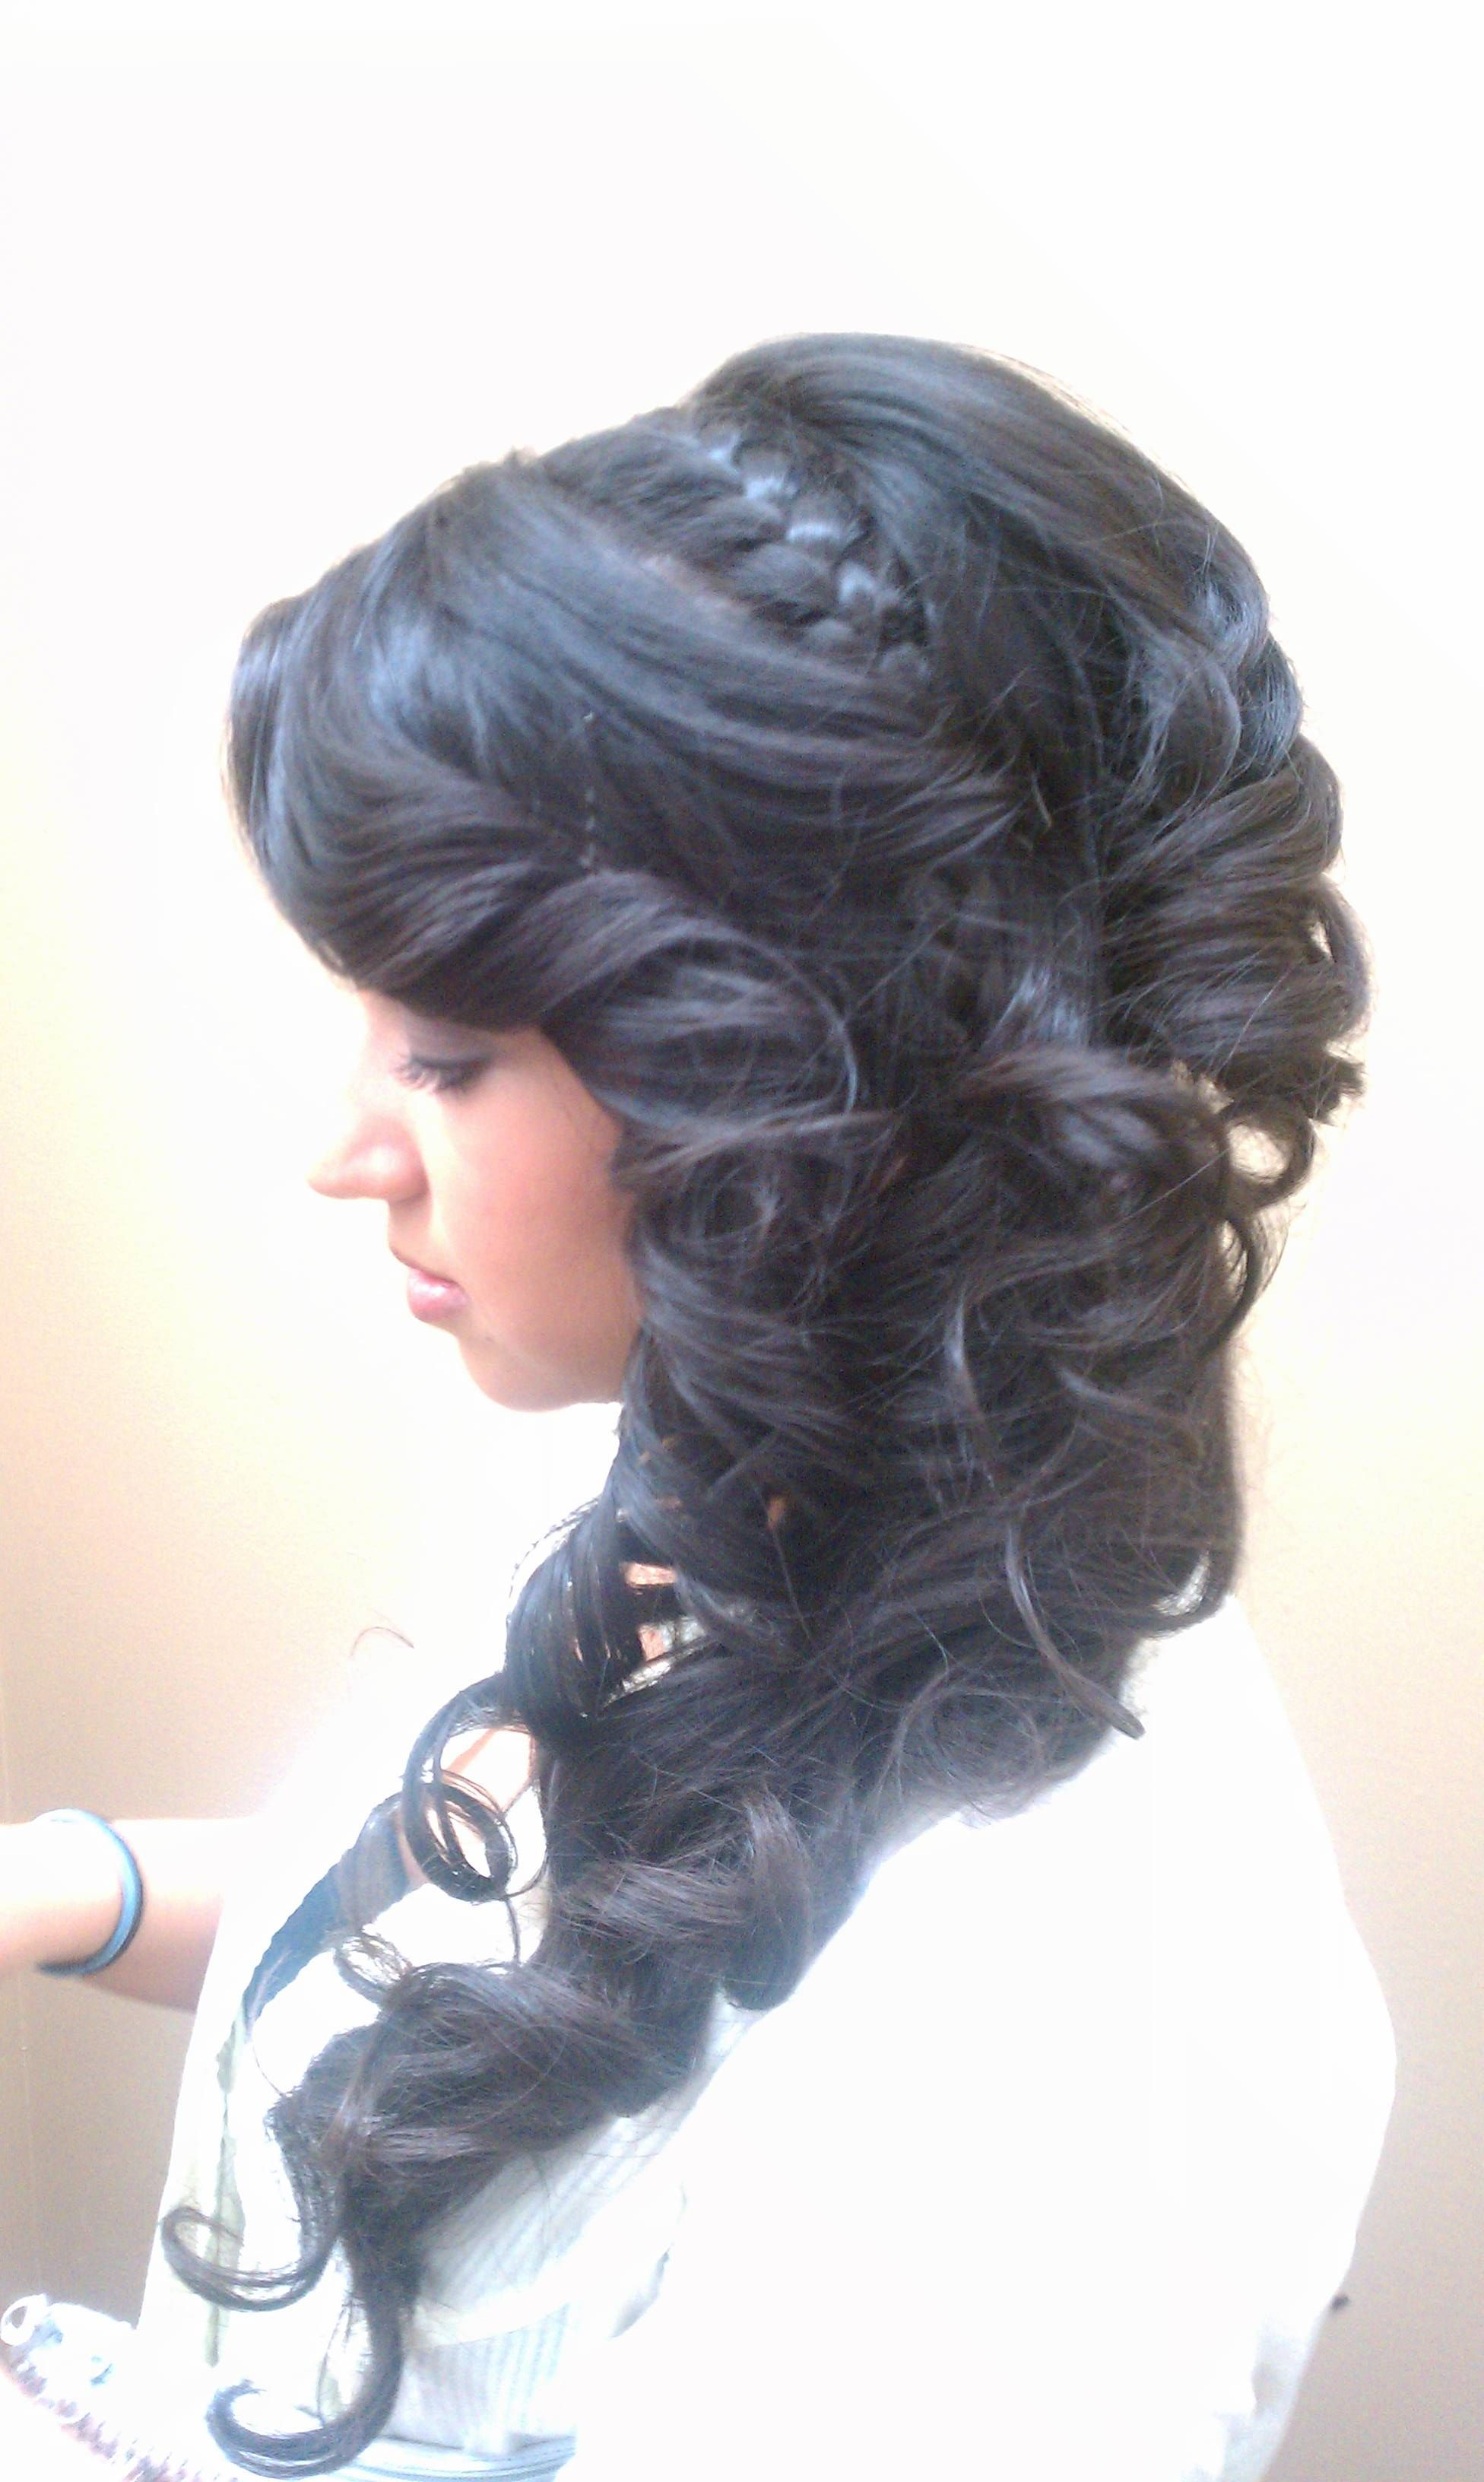 side, updo, long hair, braid, curls, tight curls, upstyle, | my work